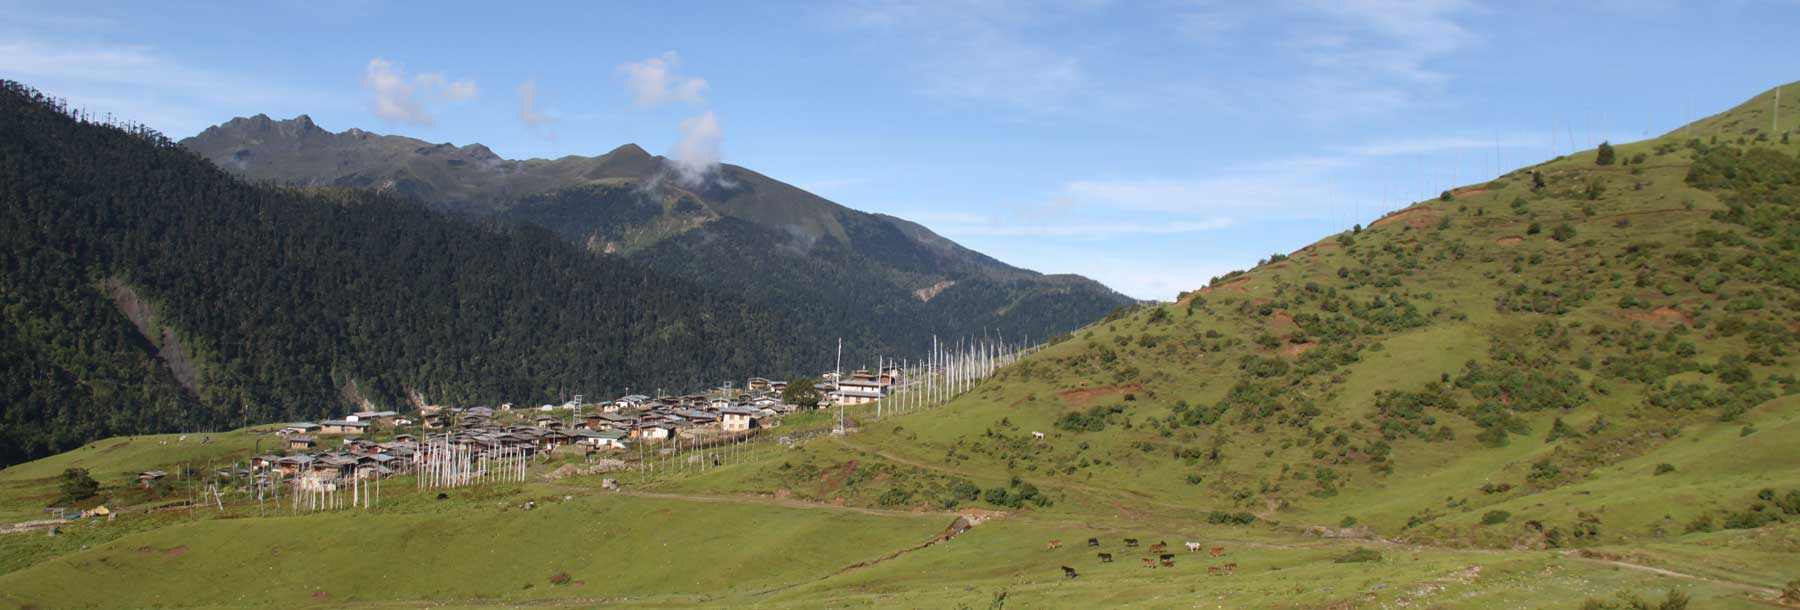 View of Merak village at an elevation of 3,500m/11,480ft.